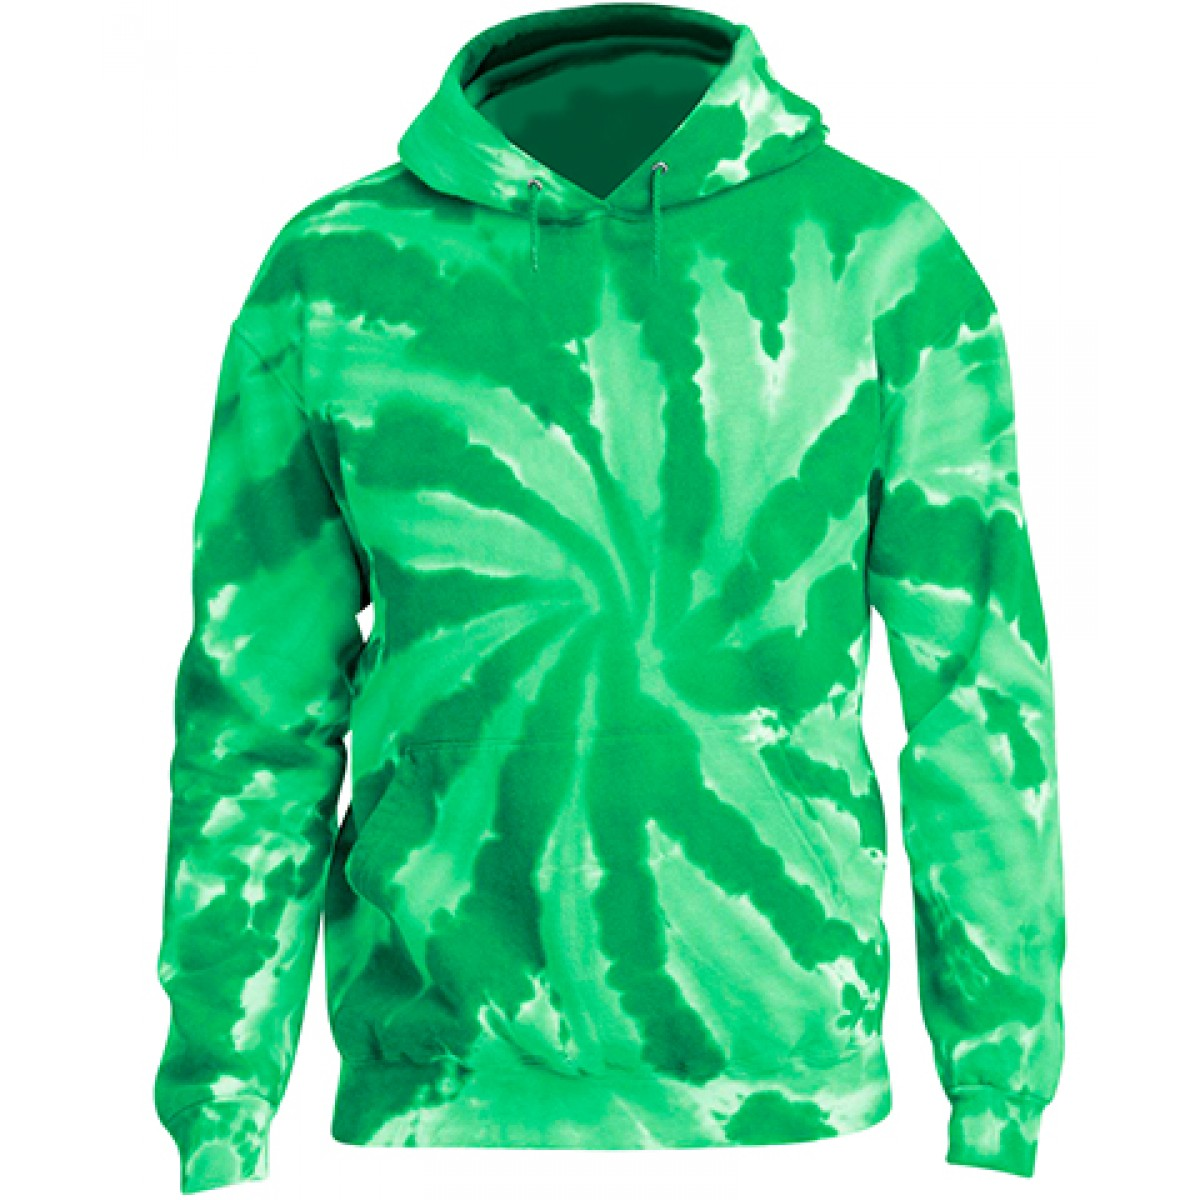 Tie-Dye Pullover Hooded Sweatshirt-Green-M